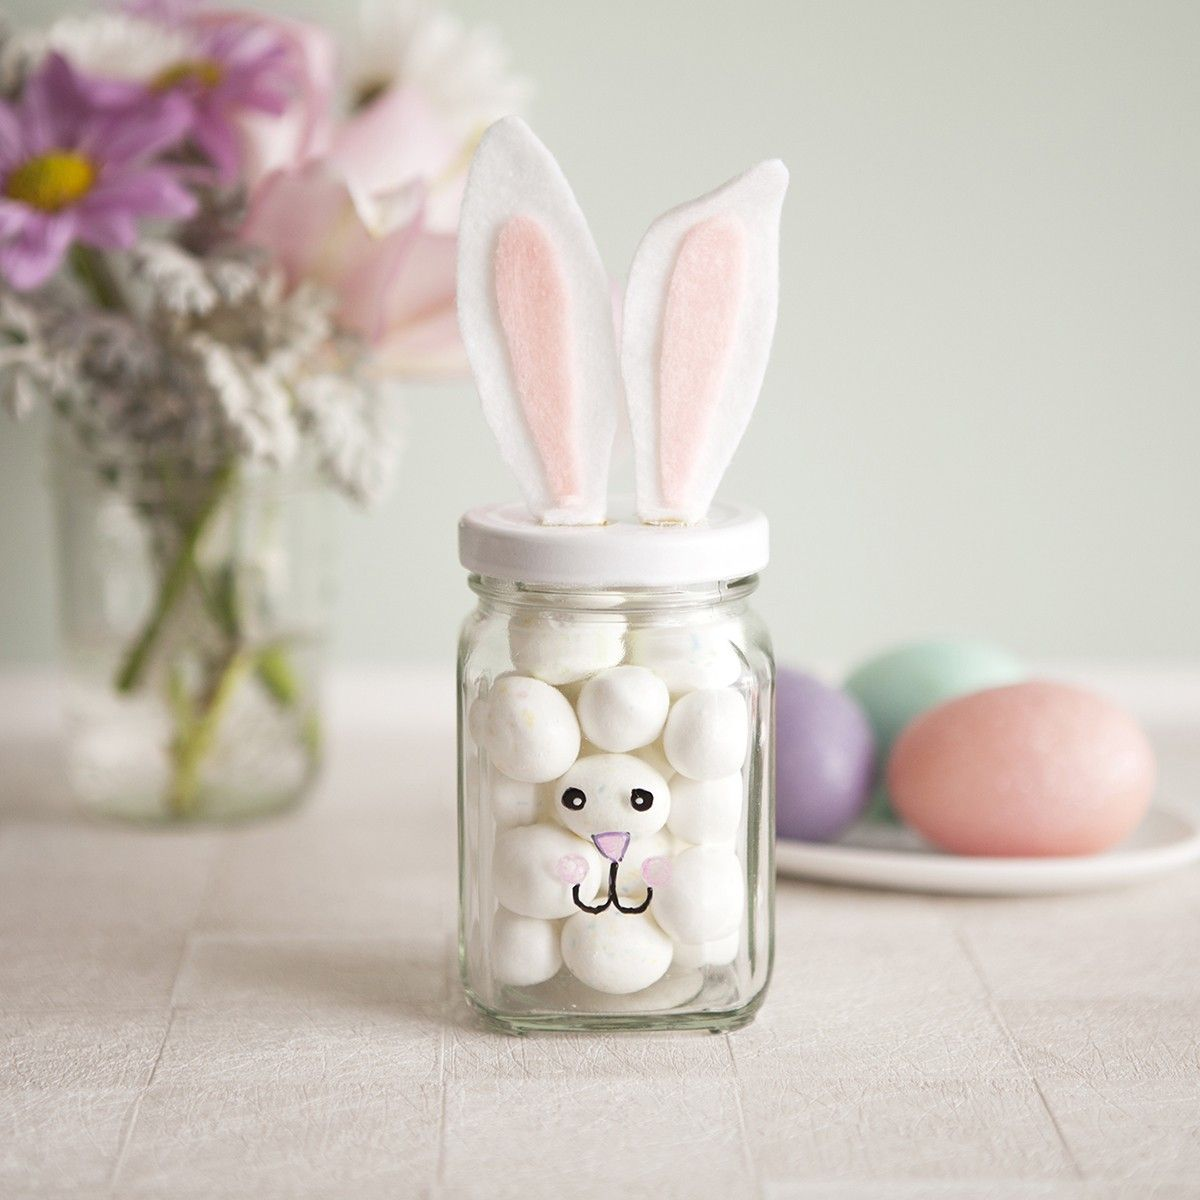 Beauteous diy easter bunny mason jar idea in pastel with long ears pastel easter bunny jars diy easter crafts for kids holiday gift ideas negle Gallery